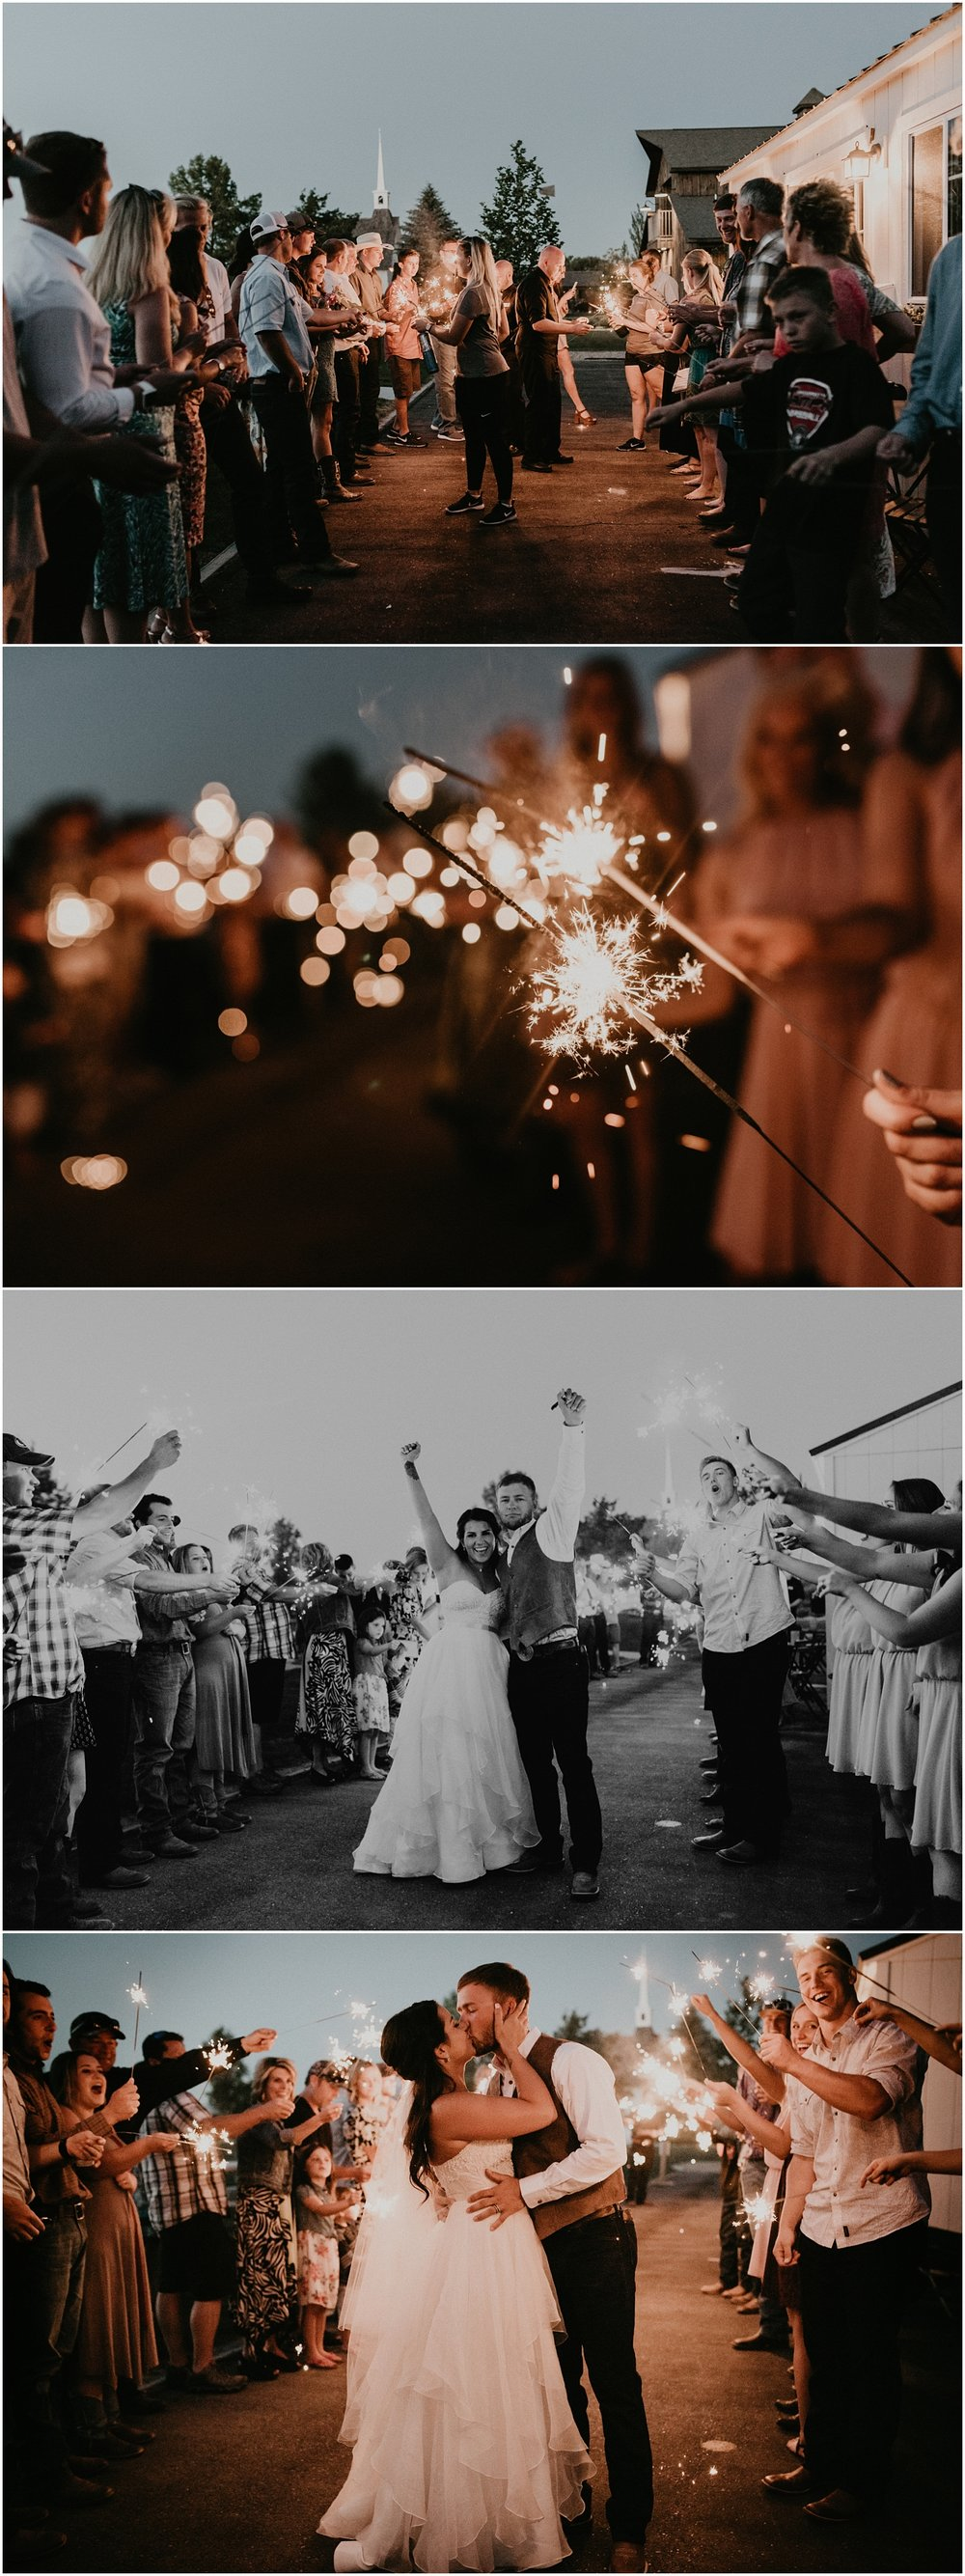 Boise Wedding Photographer Makayla Madden Photography Still Water Hollow Boise Wedding Venue Country Chic Rustic Bride and Groom Idaho Bride Summer Wedding Sparkler Exit Ideas